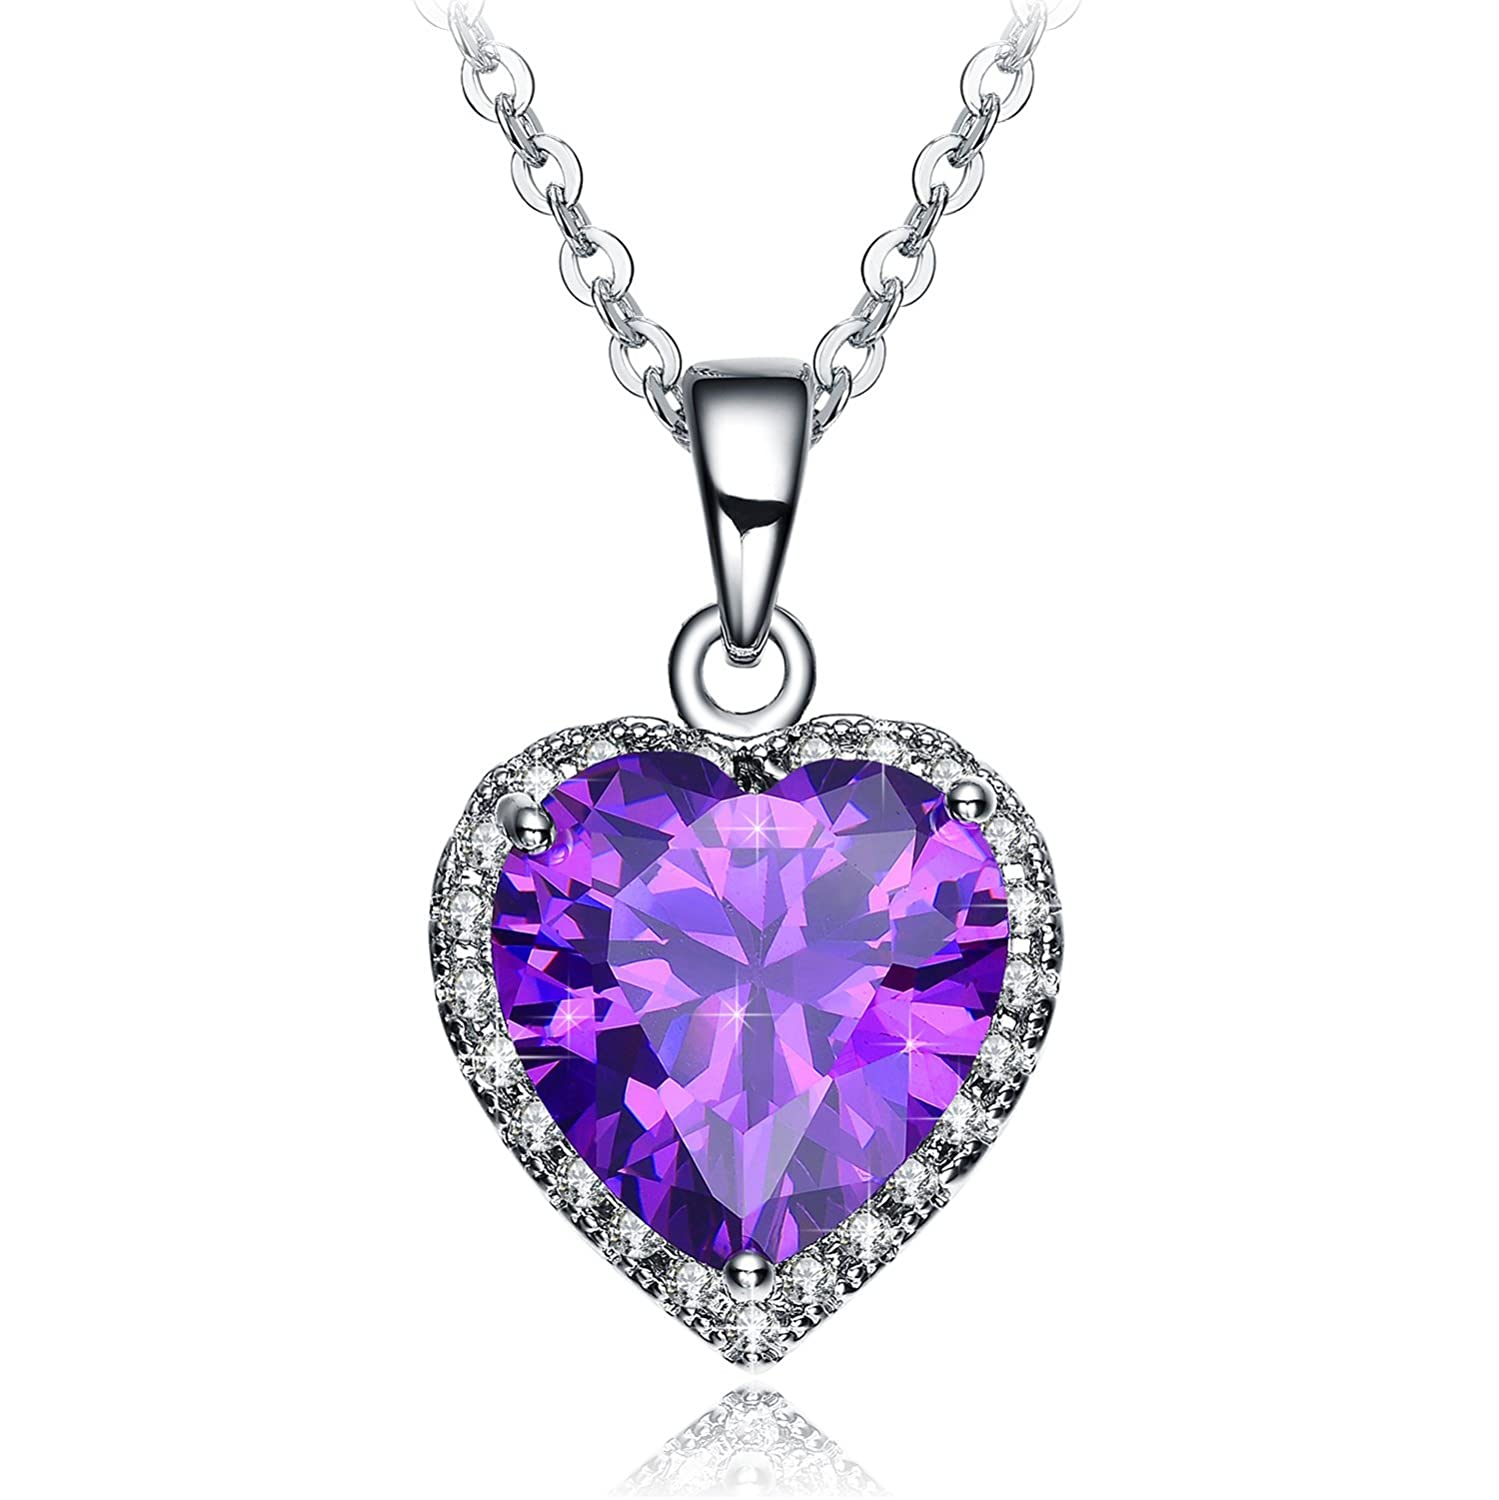 gumtree purple pendant p norwich norfolk in swarovski heart oceanic jewellery necklace